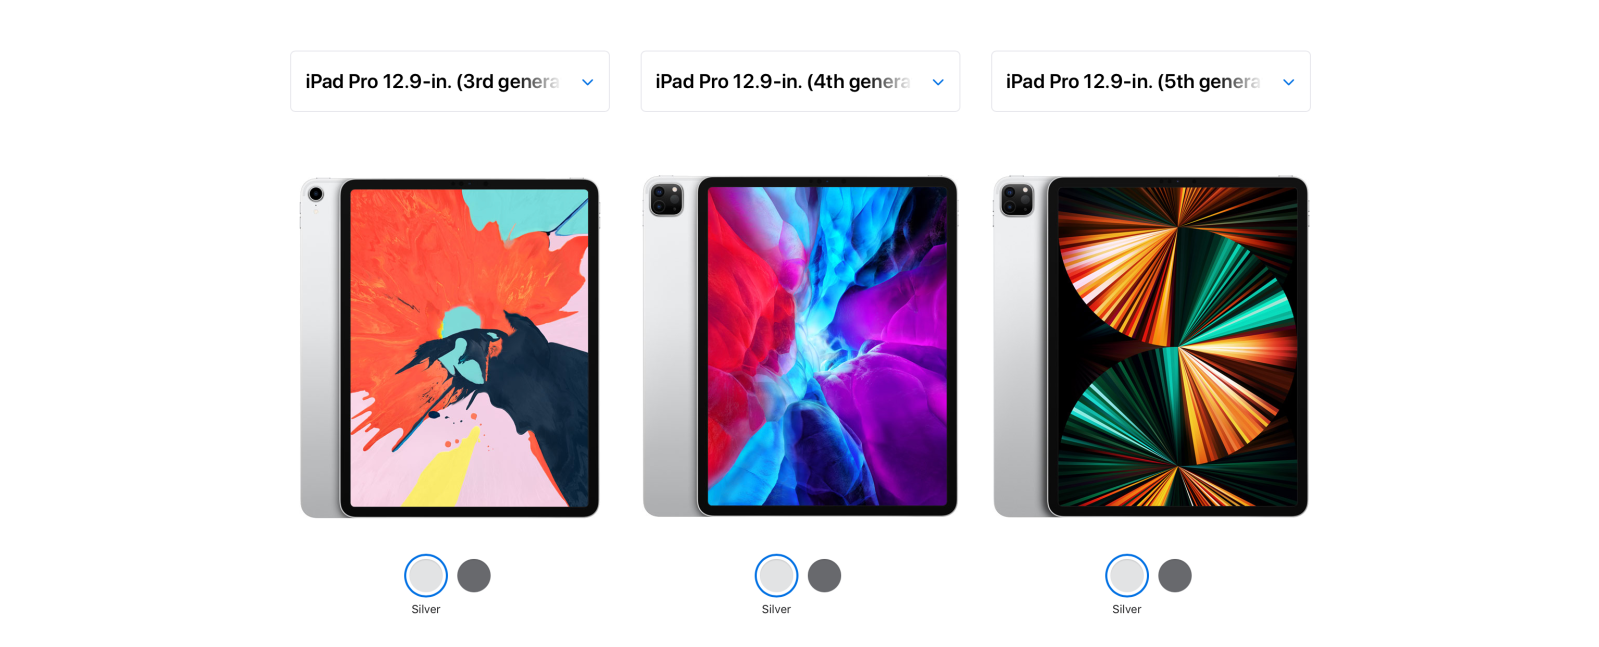 Opinion: The new iPad Pro is an incredible technological ...